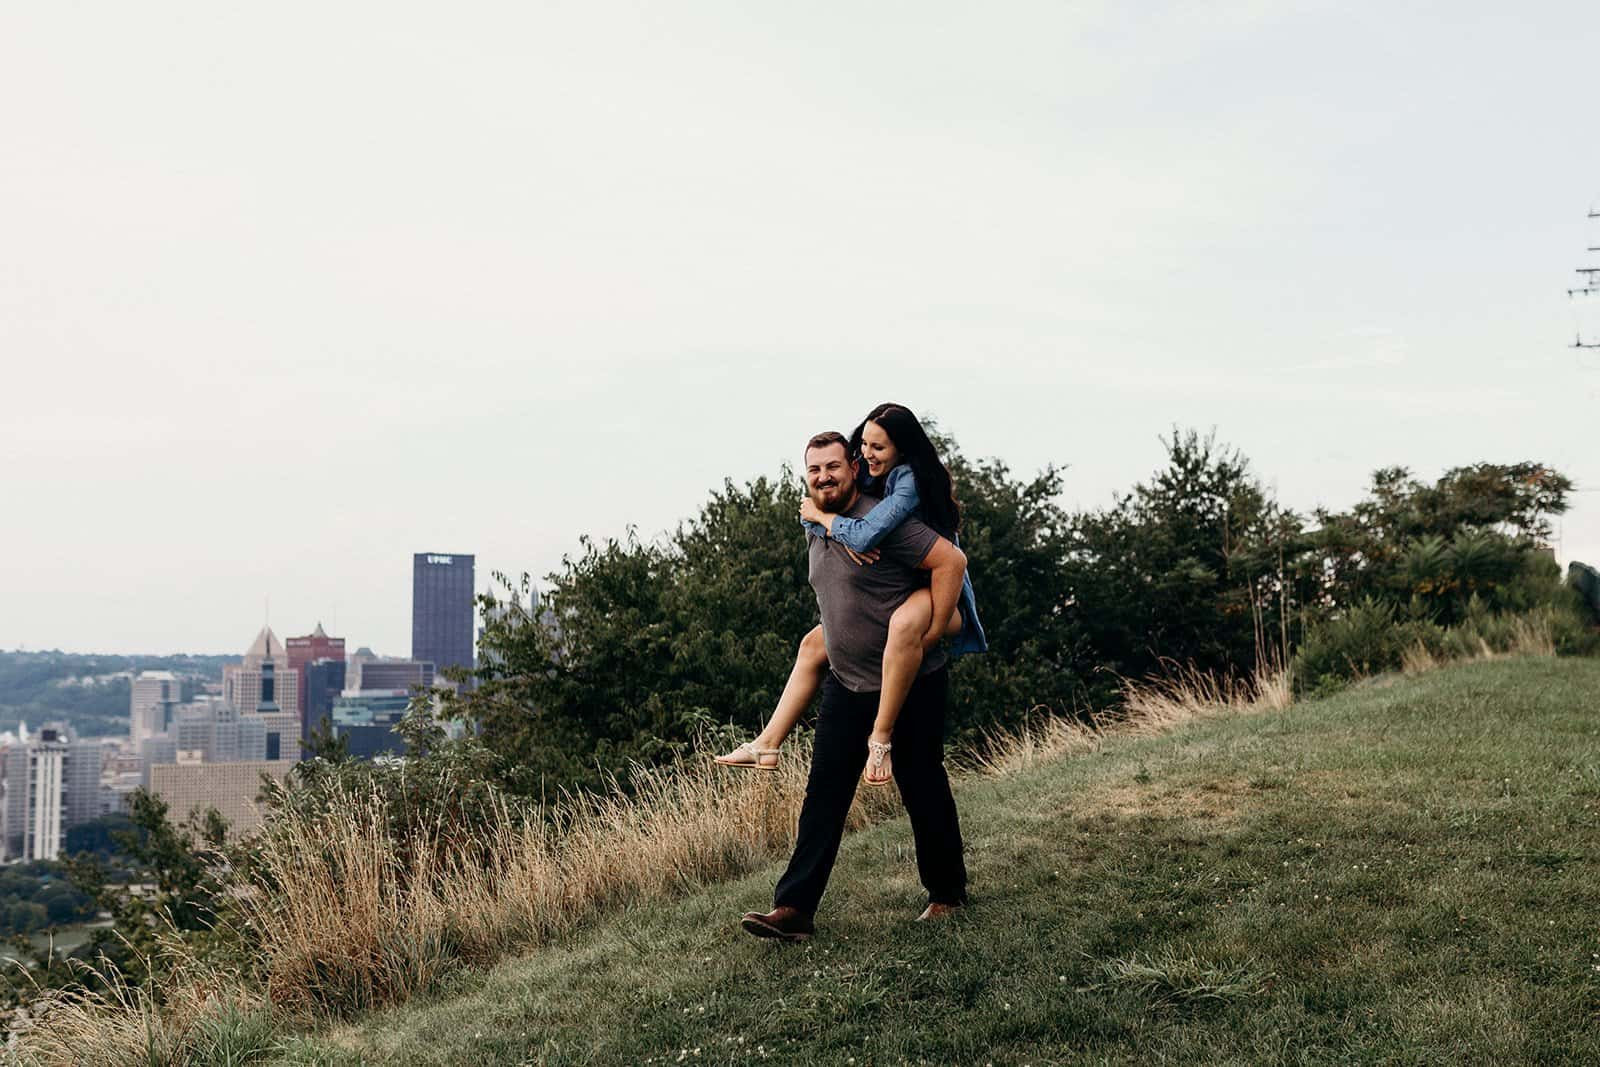 Couple laughing during piggy back ride on Mount Washington hillside in Pittsburgh